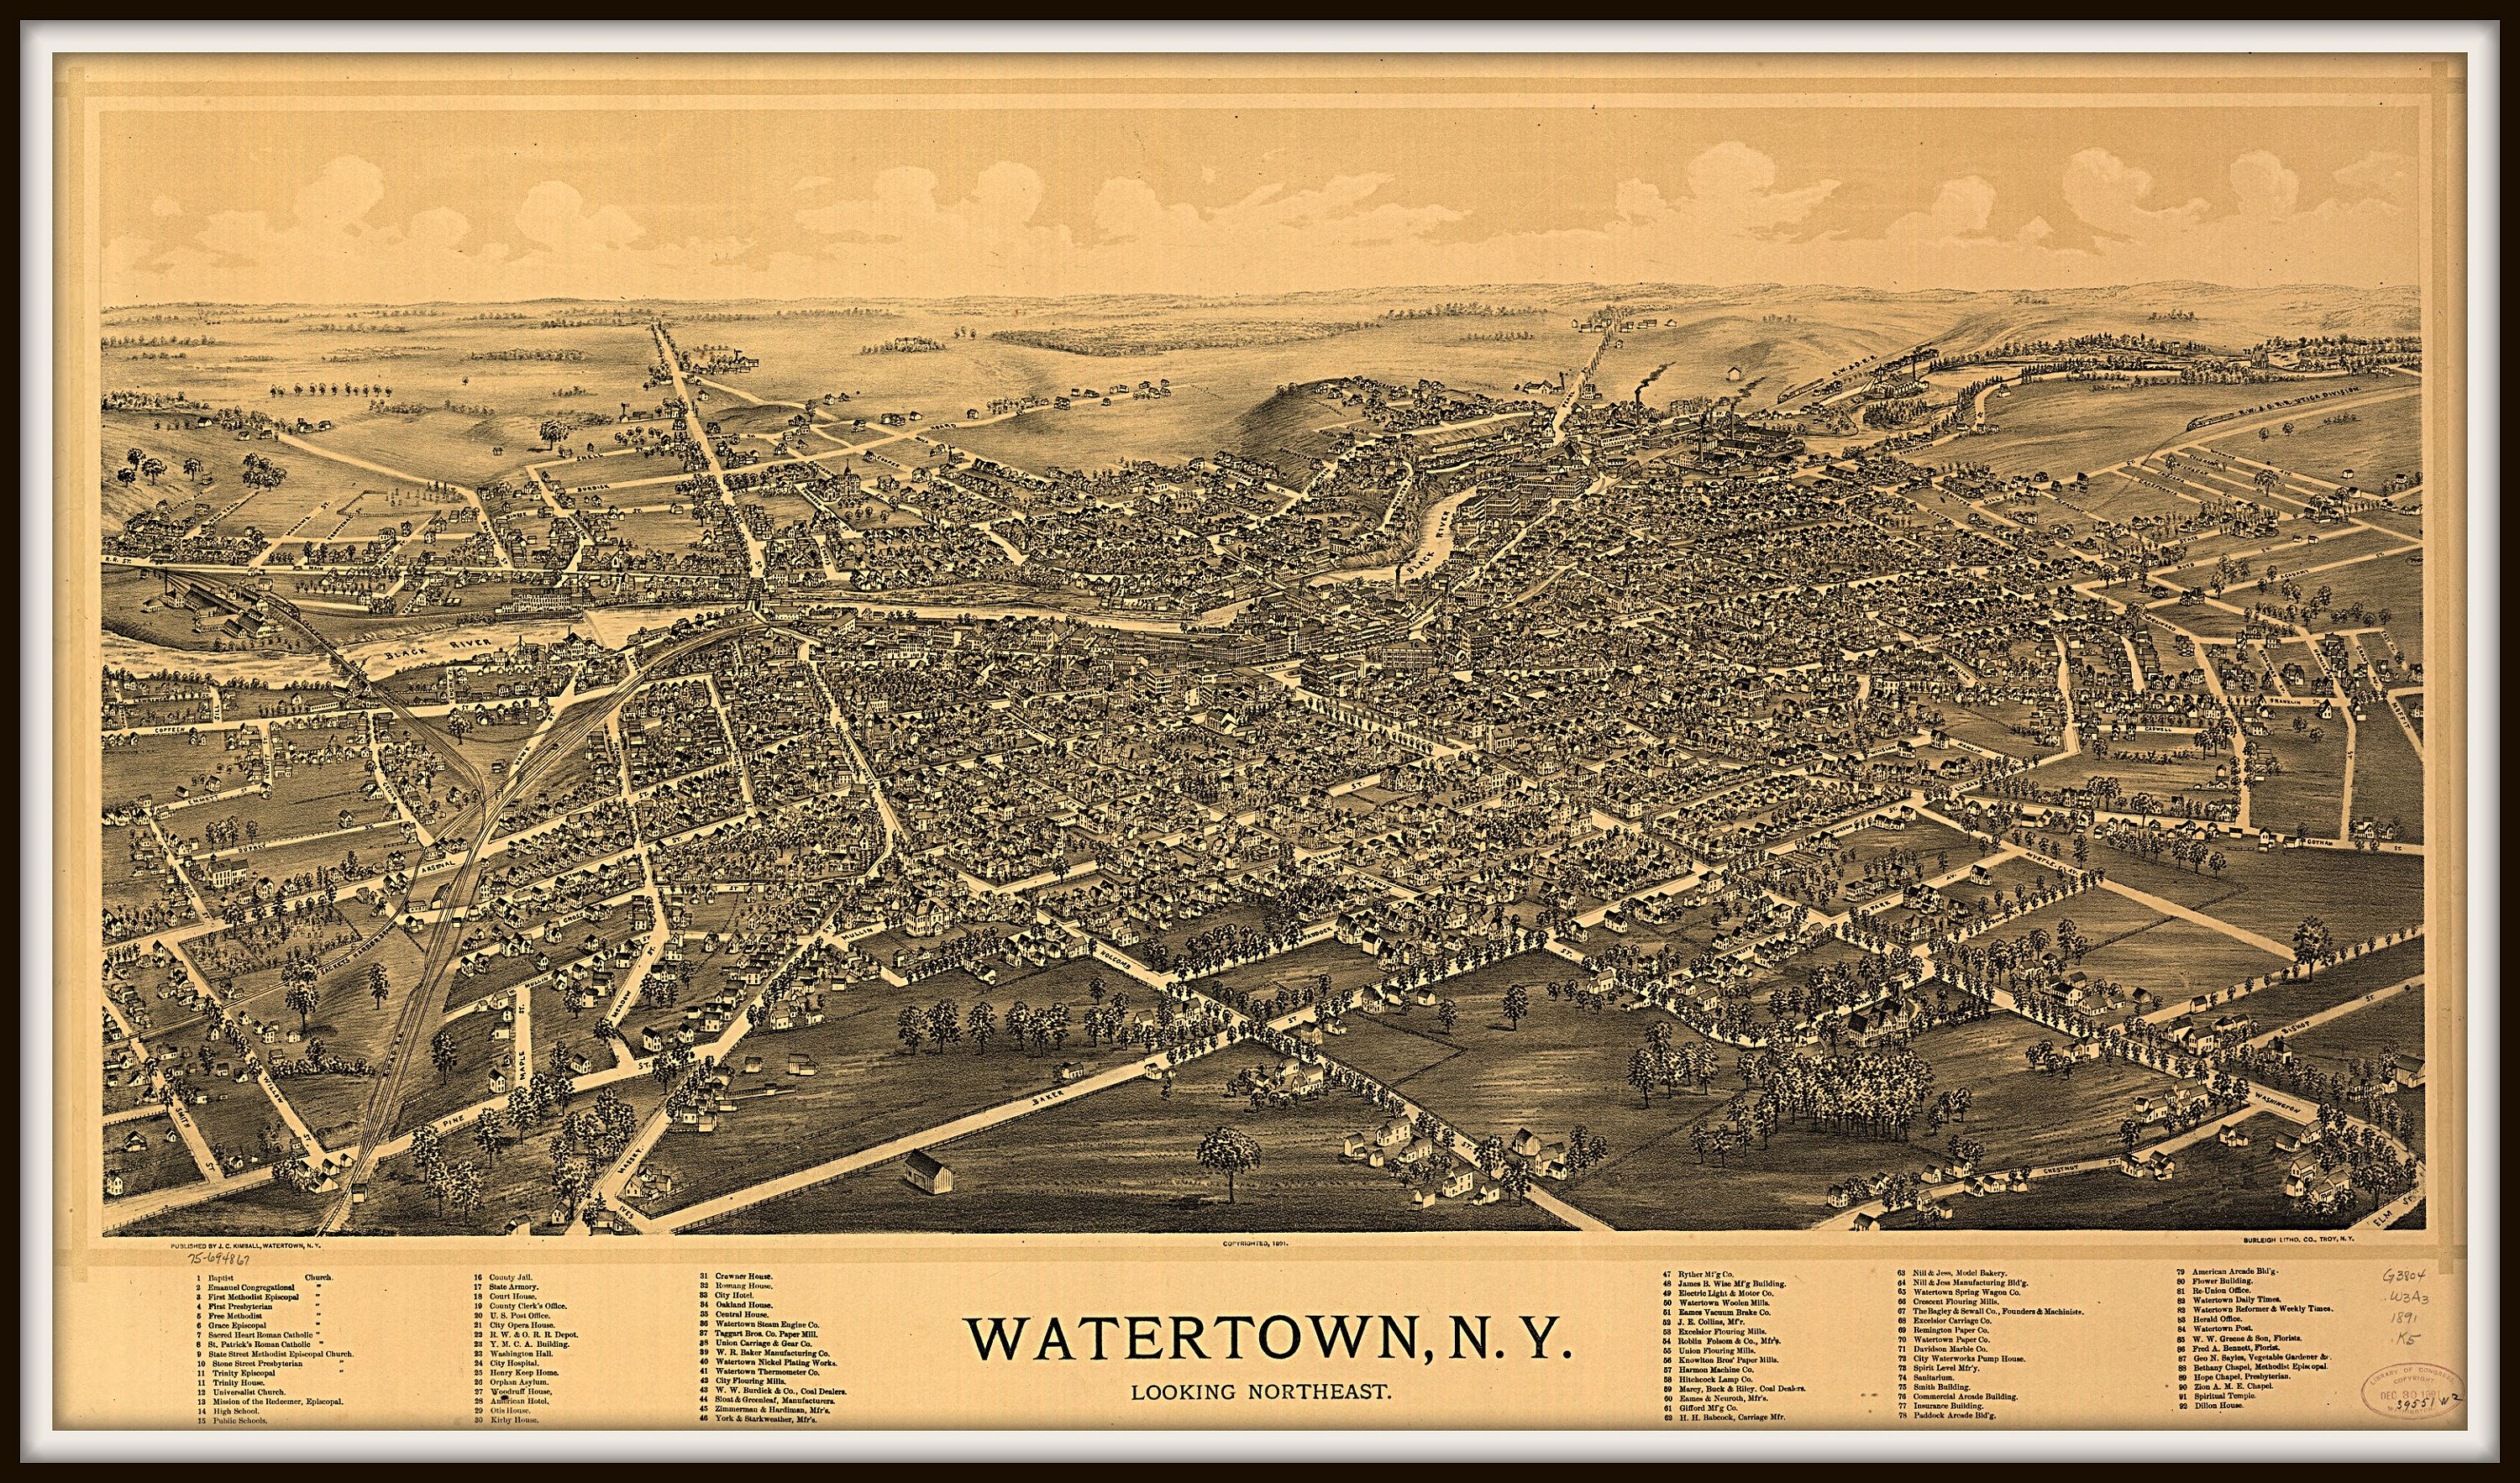 Watertown Ny Panoramic Map Vintage Map Vintage Map Art Vintage Map Decor Old Maps Vintage Map Prints Wall Hanging With Images Birds Eye View Map Vintage Maps Art Panoramic Map